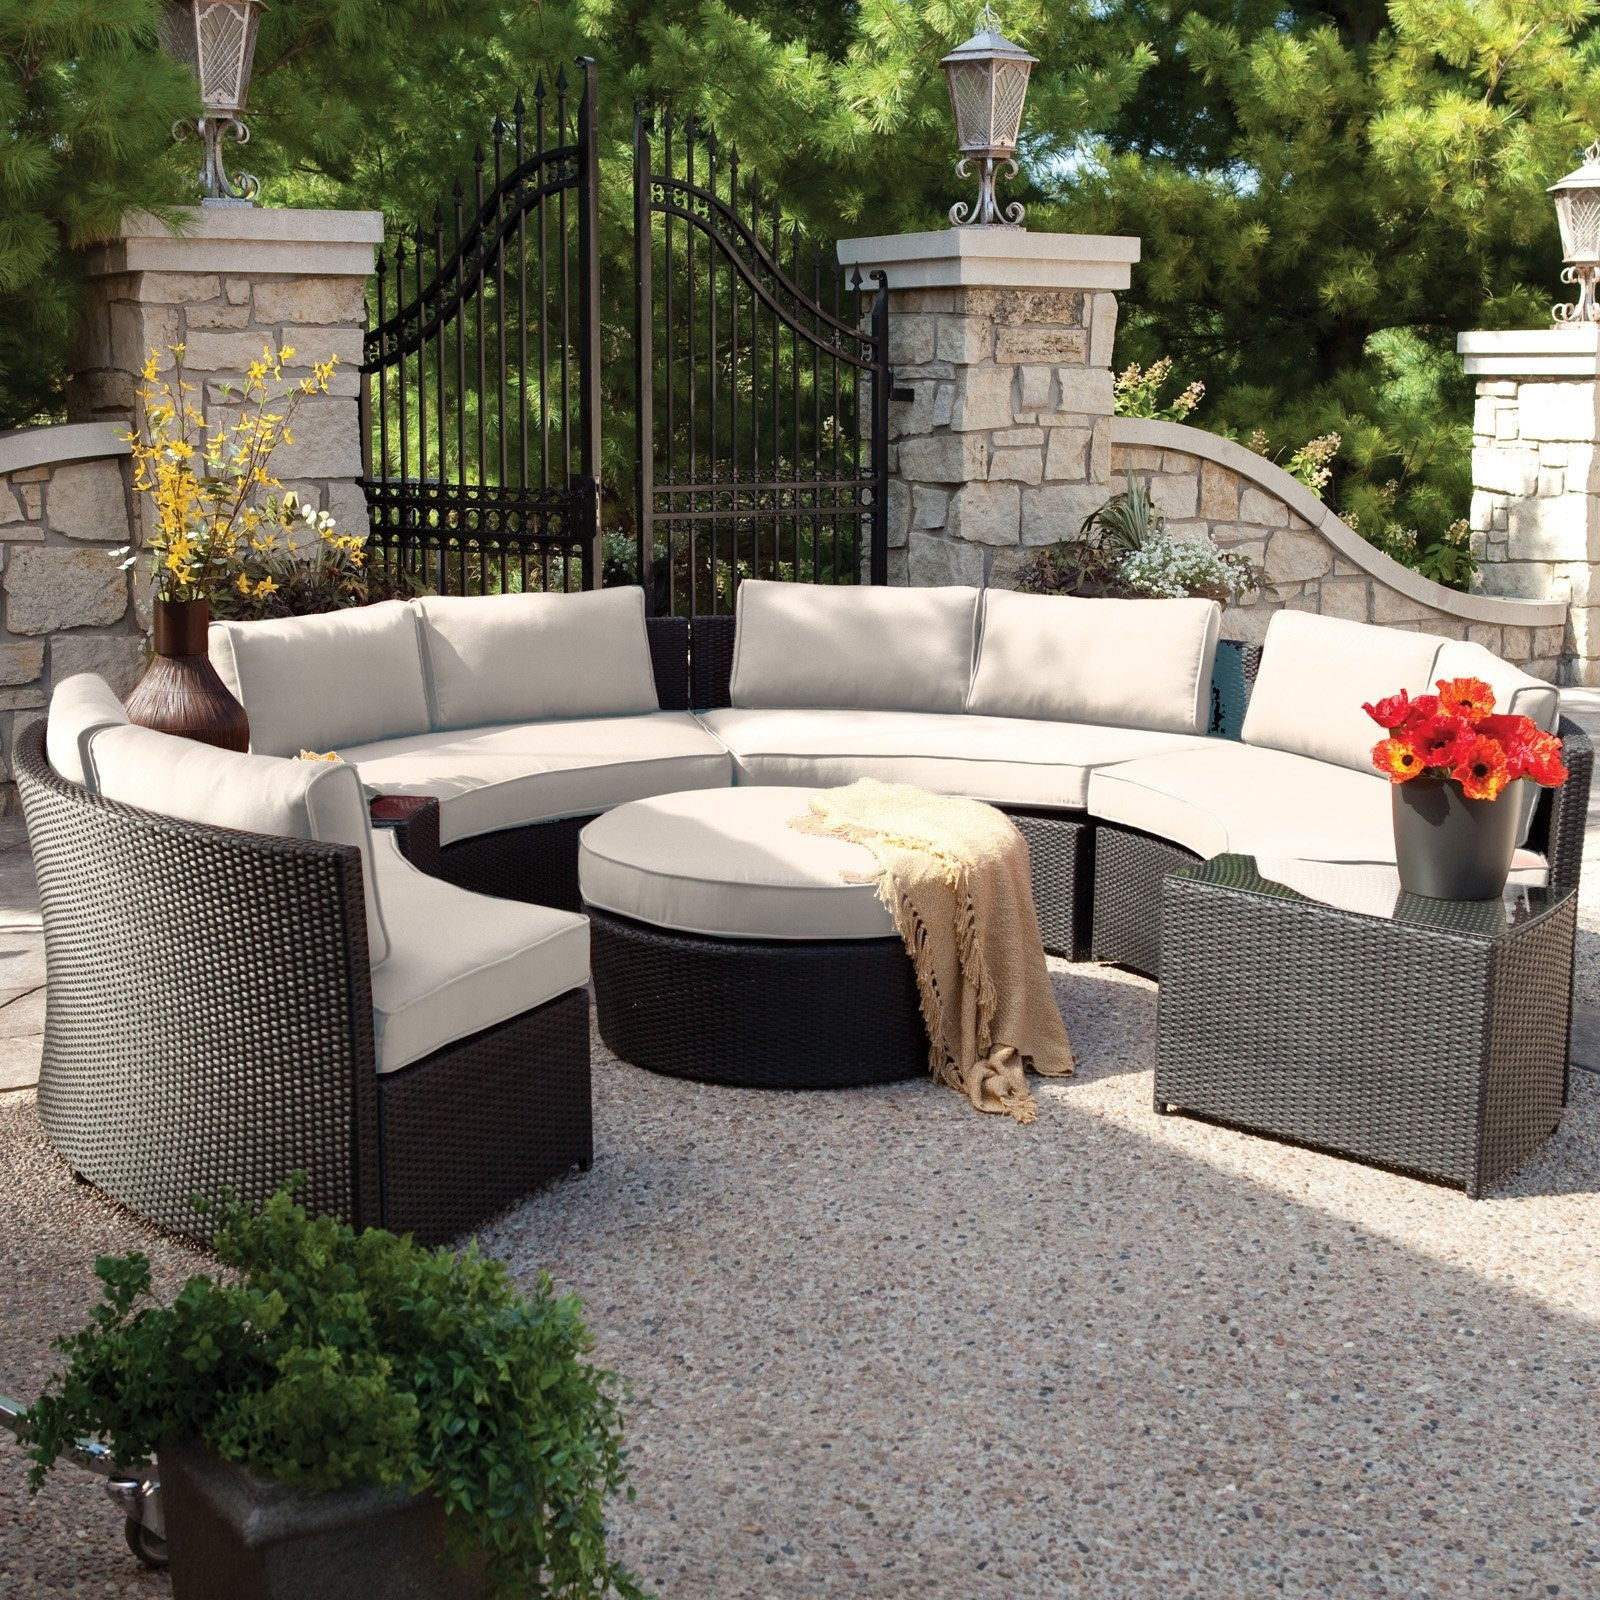 Well Liked Belham Living Meridian Round Outdoor Wicker Patio Furniture Set With Inside Sunbrella Patio Conversation Sets (View 7 of 20)